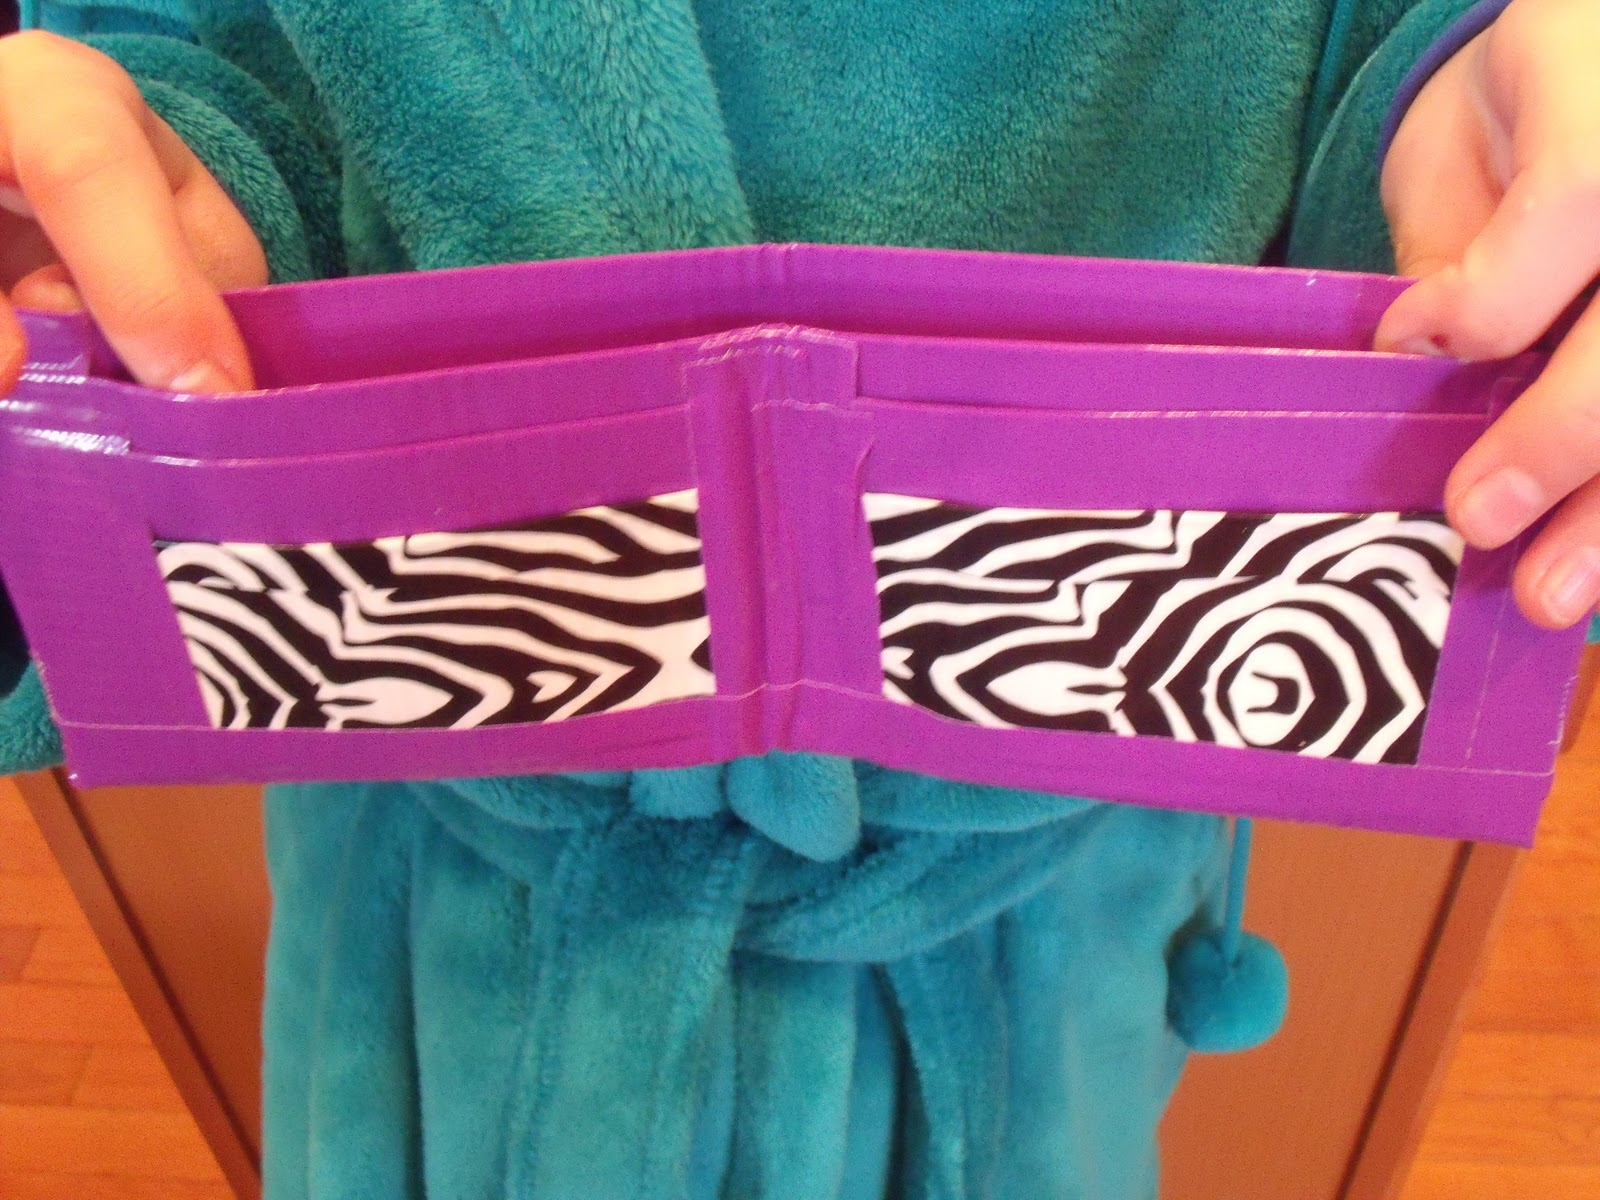 duct tape projects instructions